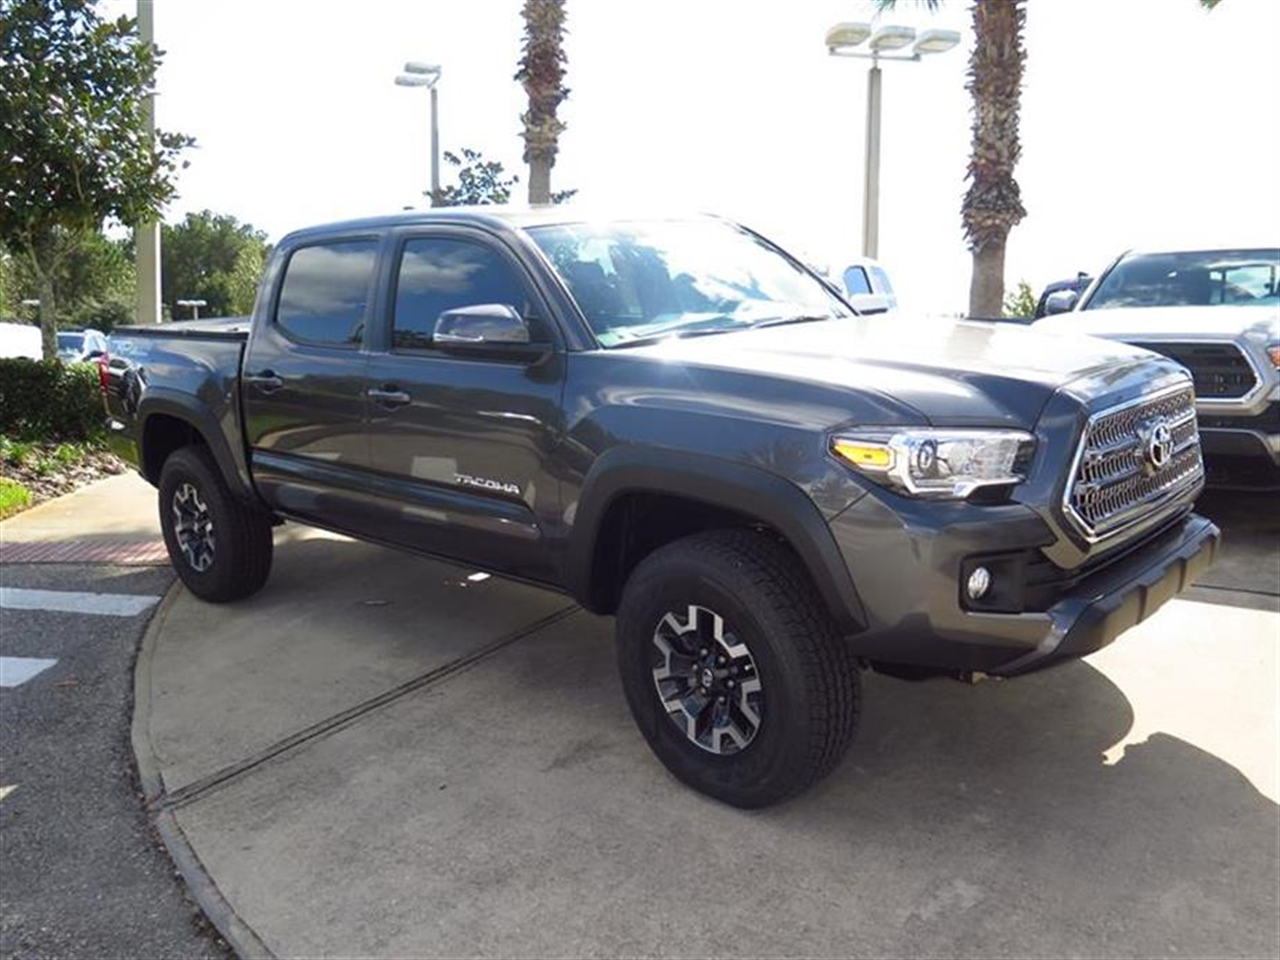 2016 TOYOTA TACOMA 4WD Double Cab V6 MT TRD Sport 0 miles 115V400W Deck Powerpoint -inc 2- inst